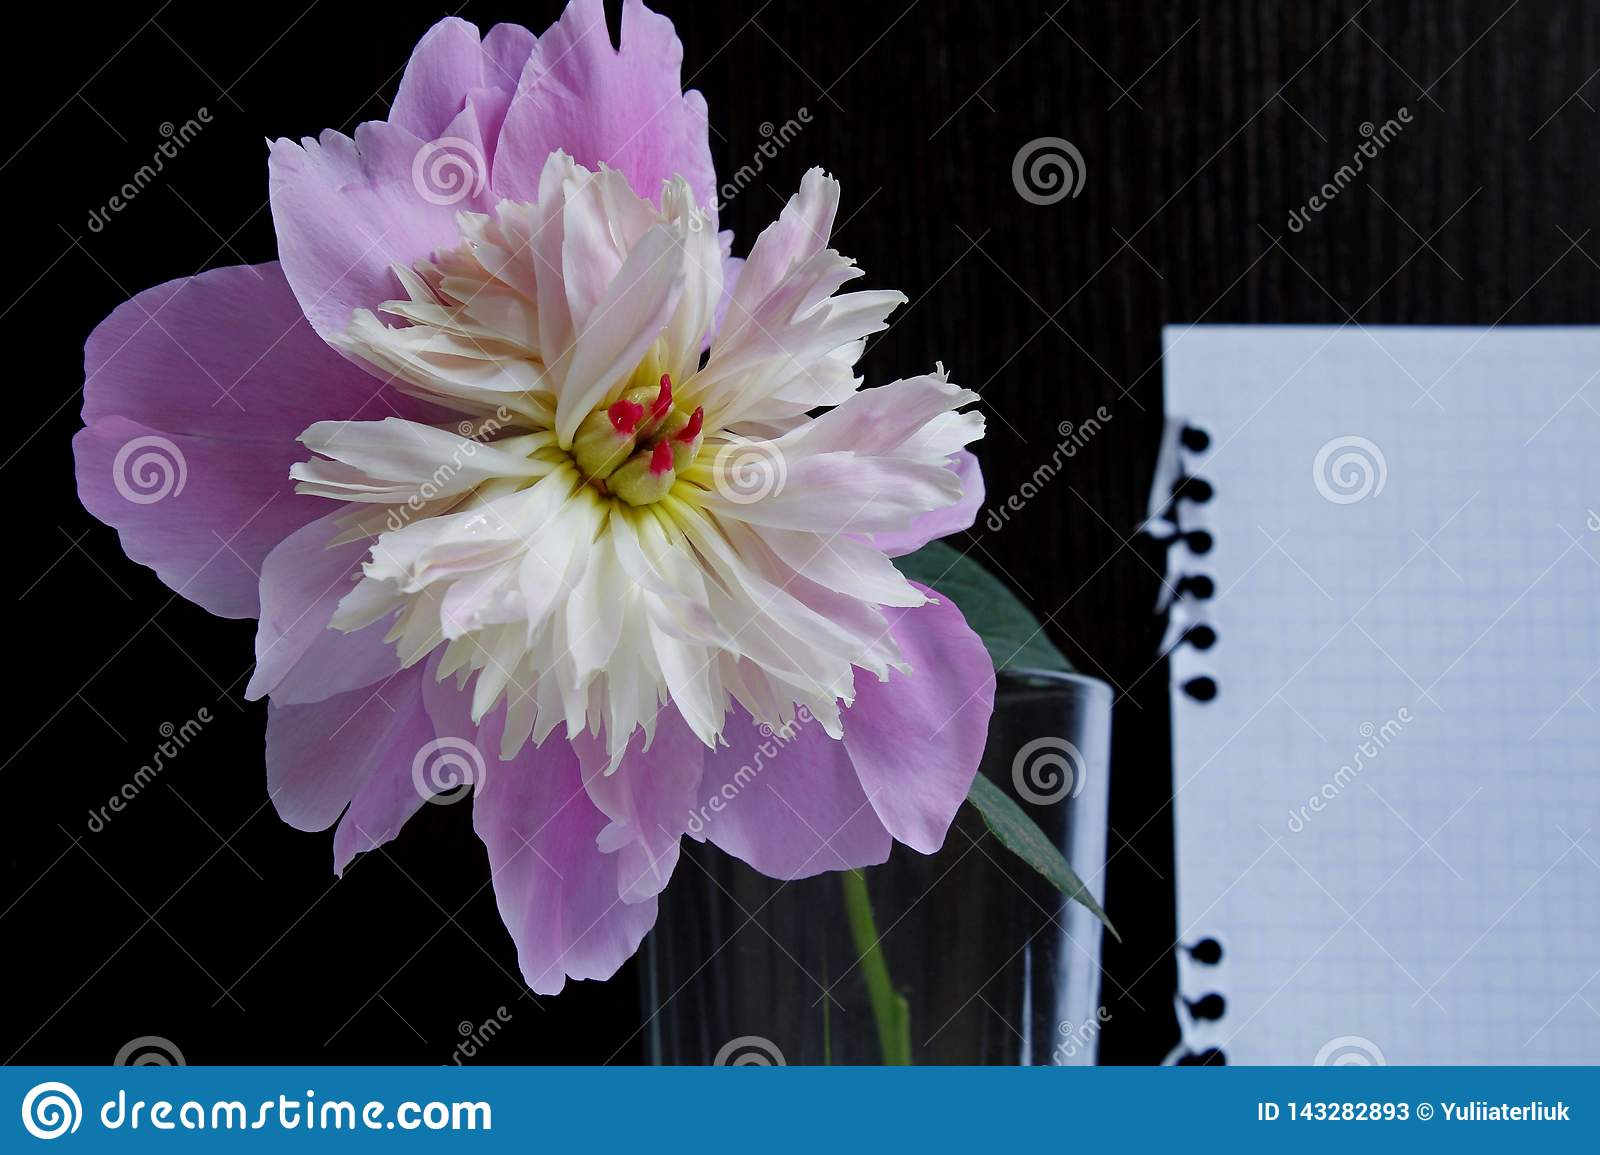 One pink peony in a glass on a black wooden background with a white sheet of paper